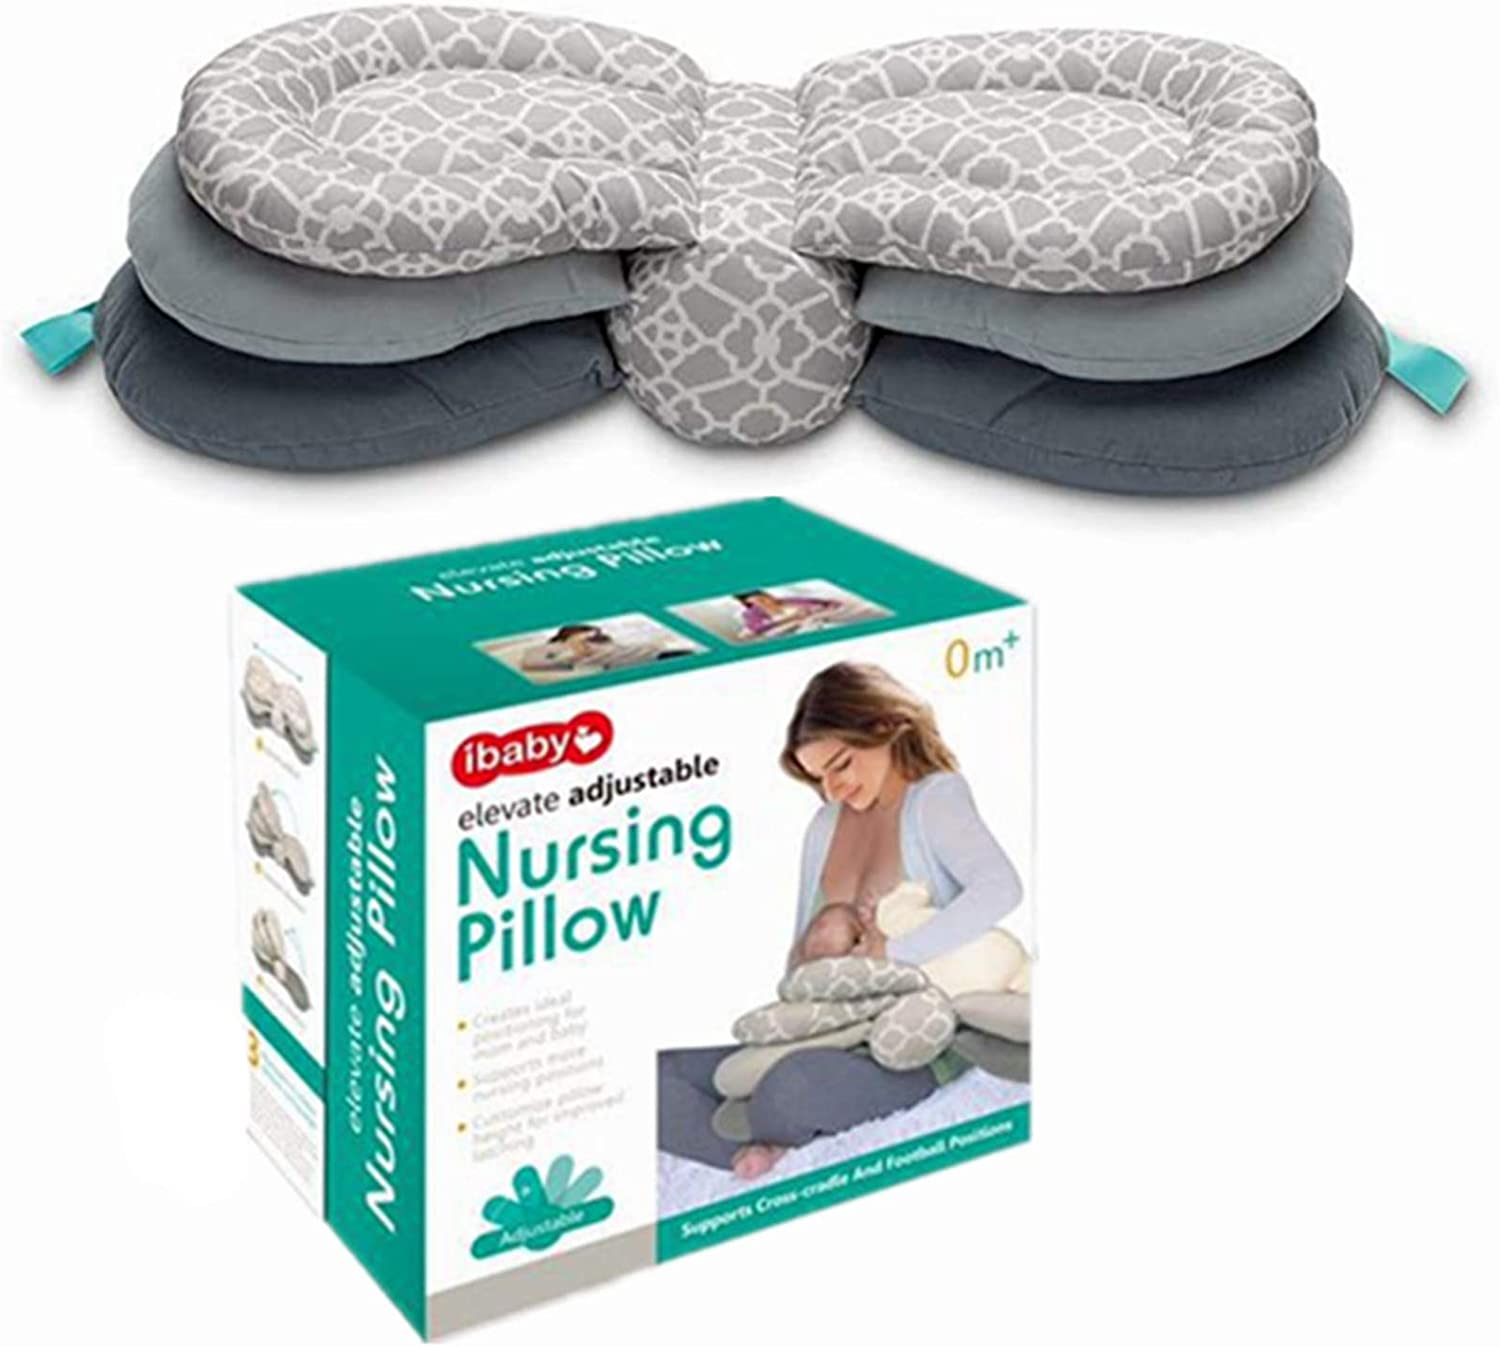 nursing pillow and position breastfeeding baby elevate adjustable newborn support cushion adjustable baby protection pillow pillow cover 100